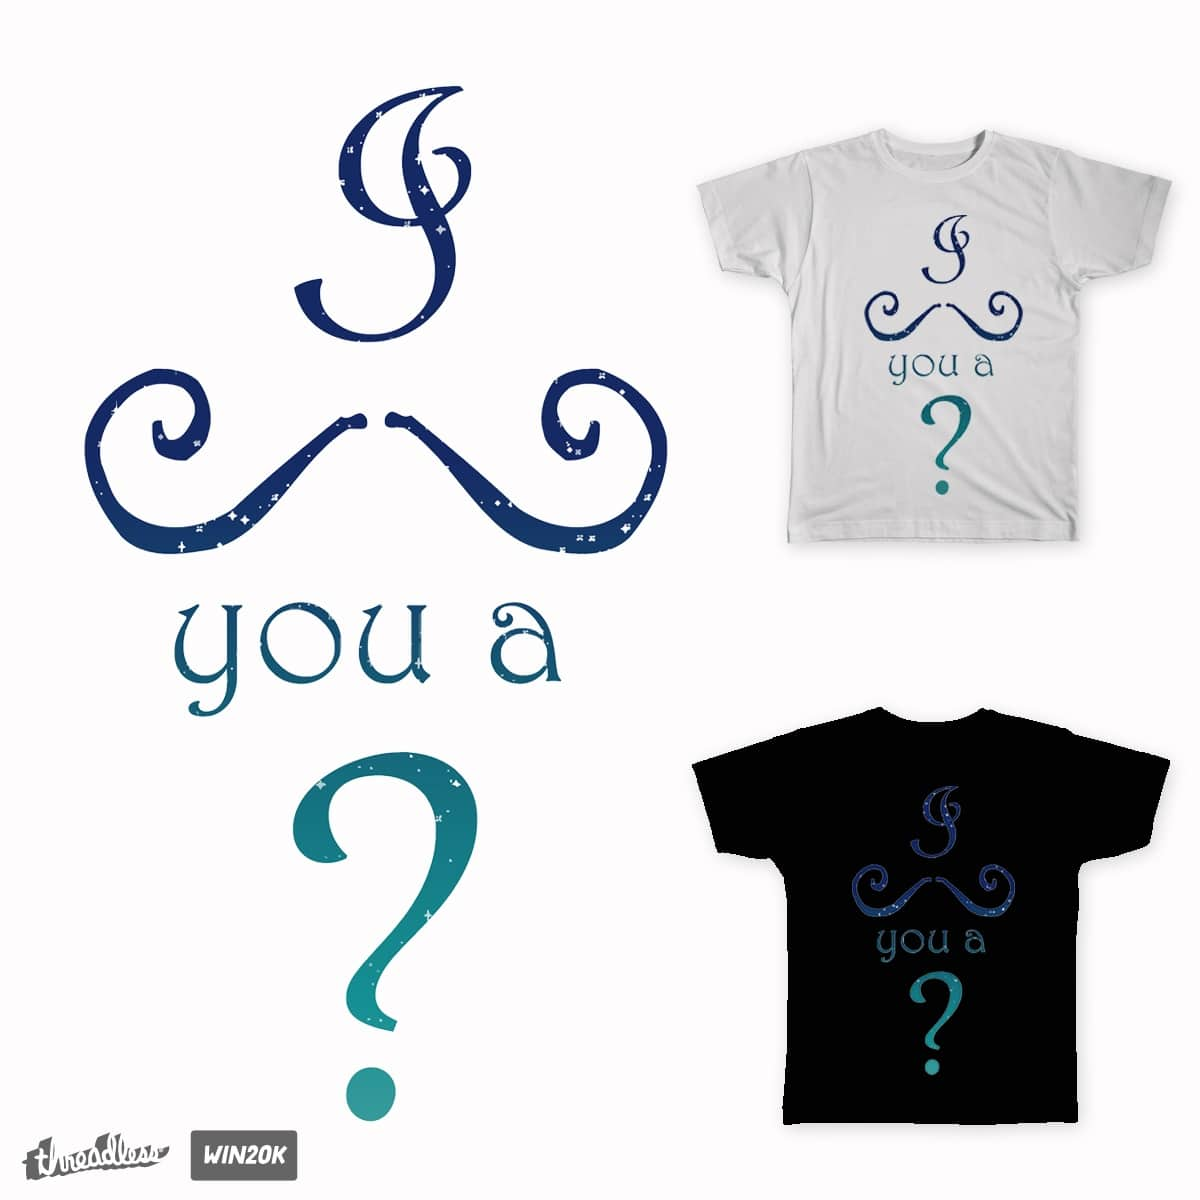 I Moustache You a Question by Sloganart on Threadless